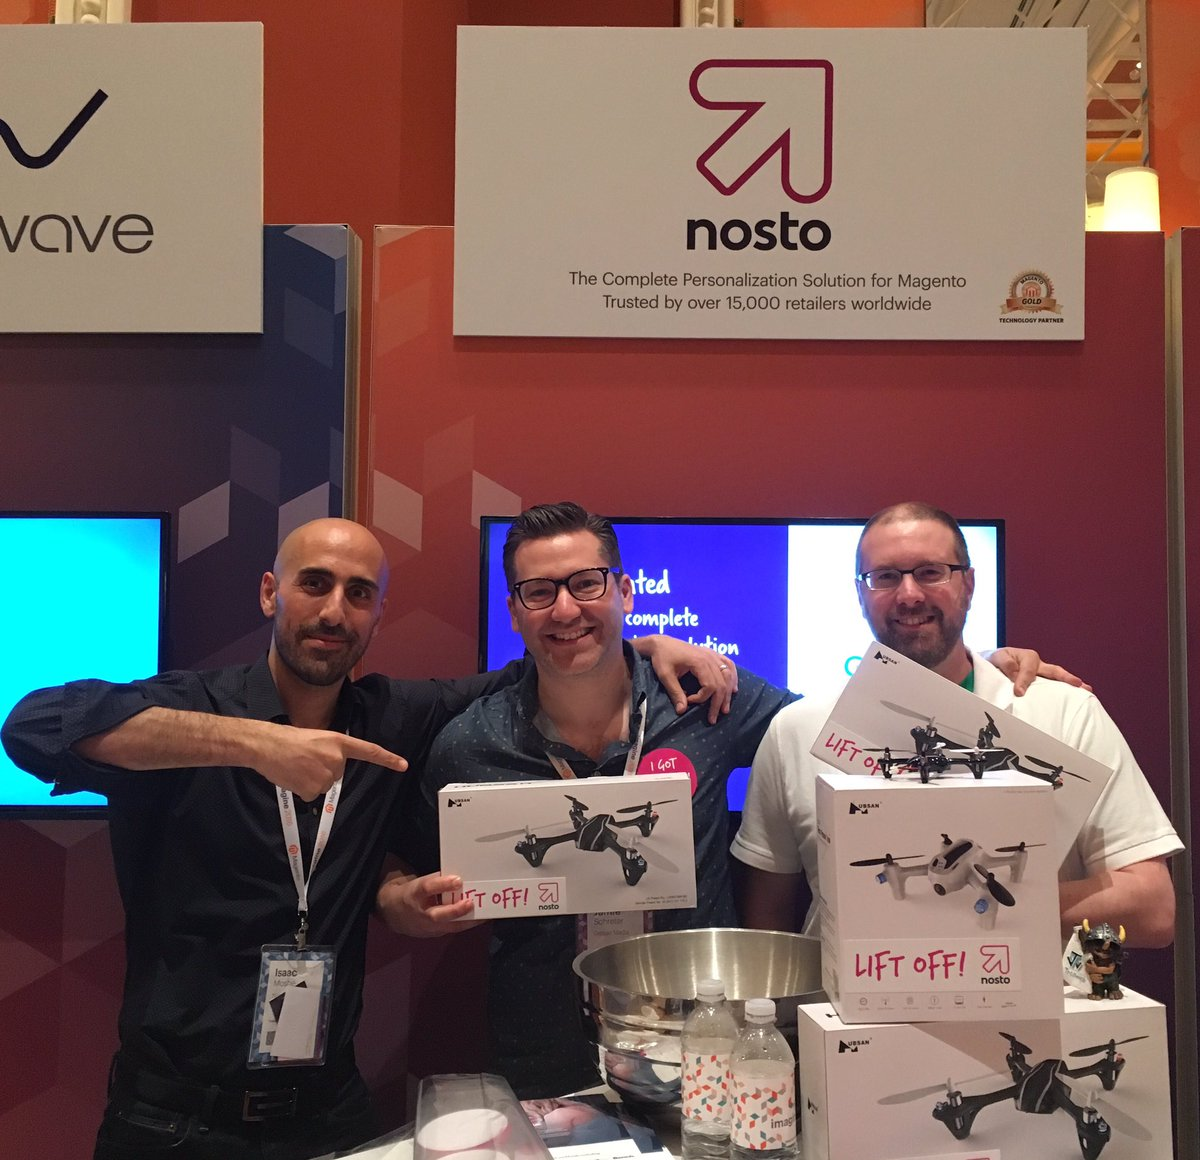 NostoSolutions: Aaron from Julep and Jamie from @demacmedia looking good with their Nosto drones! #MagentoImagine https://t.co/EPbtnuQiwK